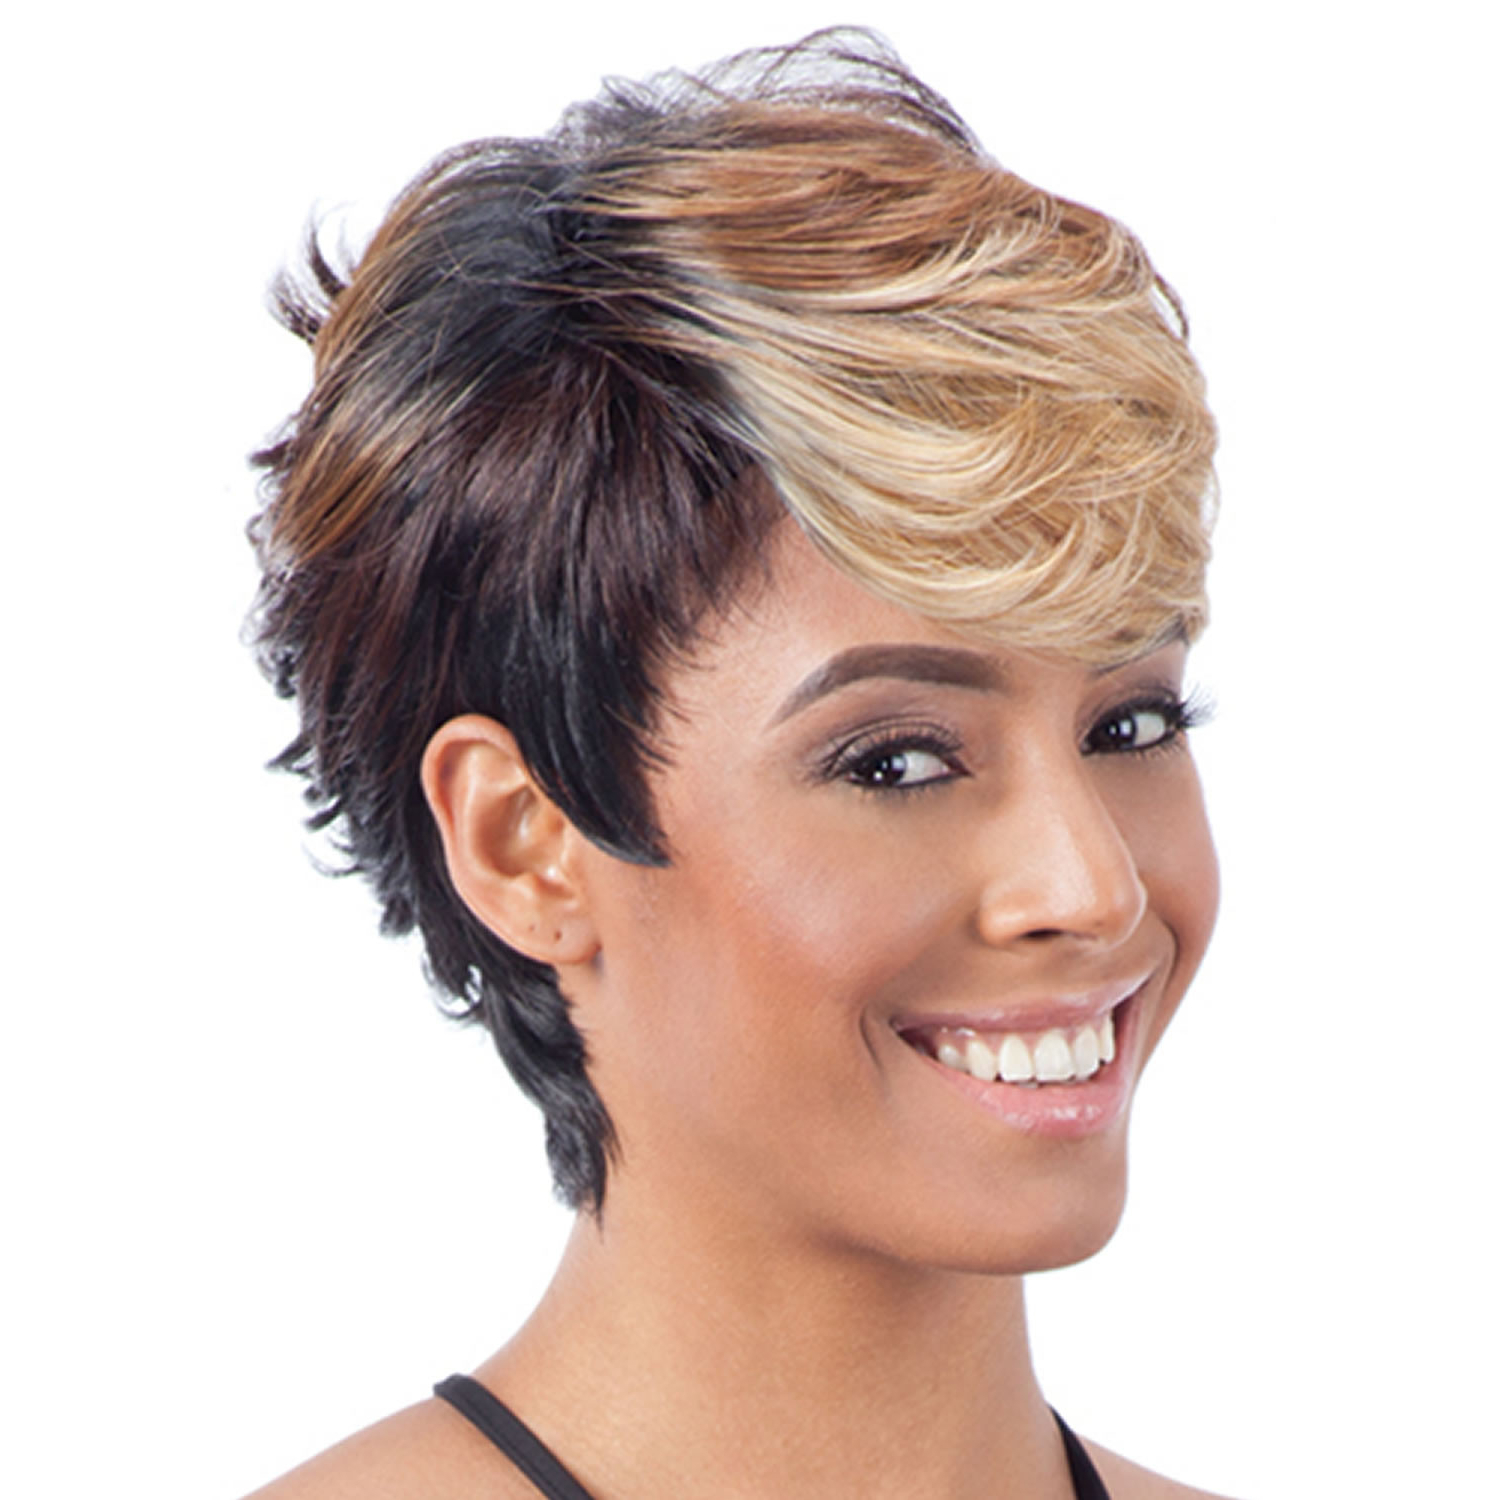 Short Hairstyles For Awesome 2018 Short Haircuts For Black Women Throughout Black Women With Short Hairstyles (View 20 of 25)